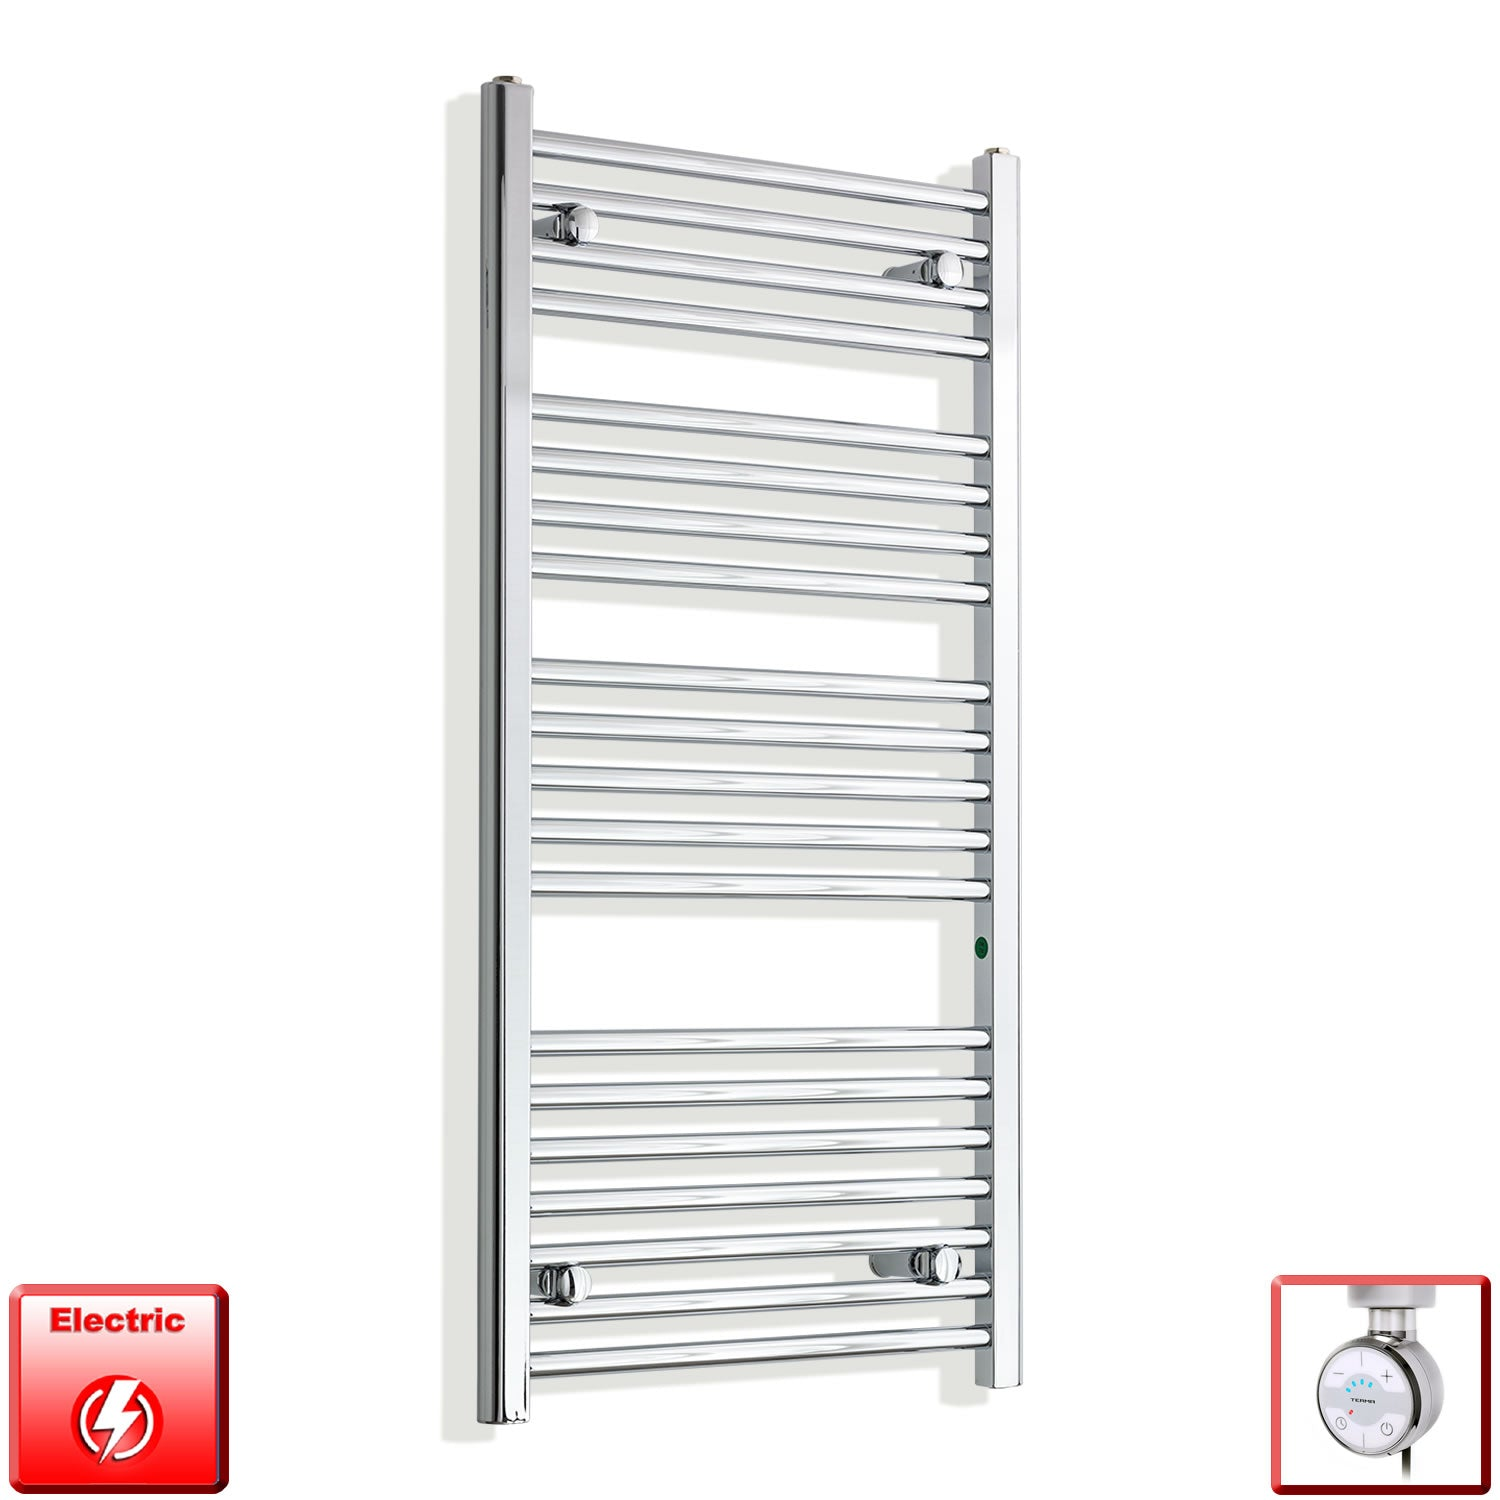 550mm Wide 1100mm High Pre-Filled Chrome Electric Towel Rail Radiator With Thermostatic MOA Element